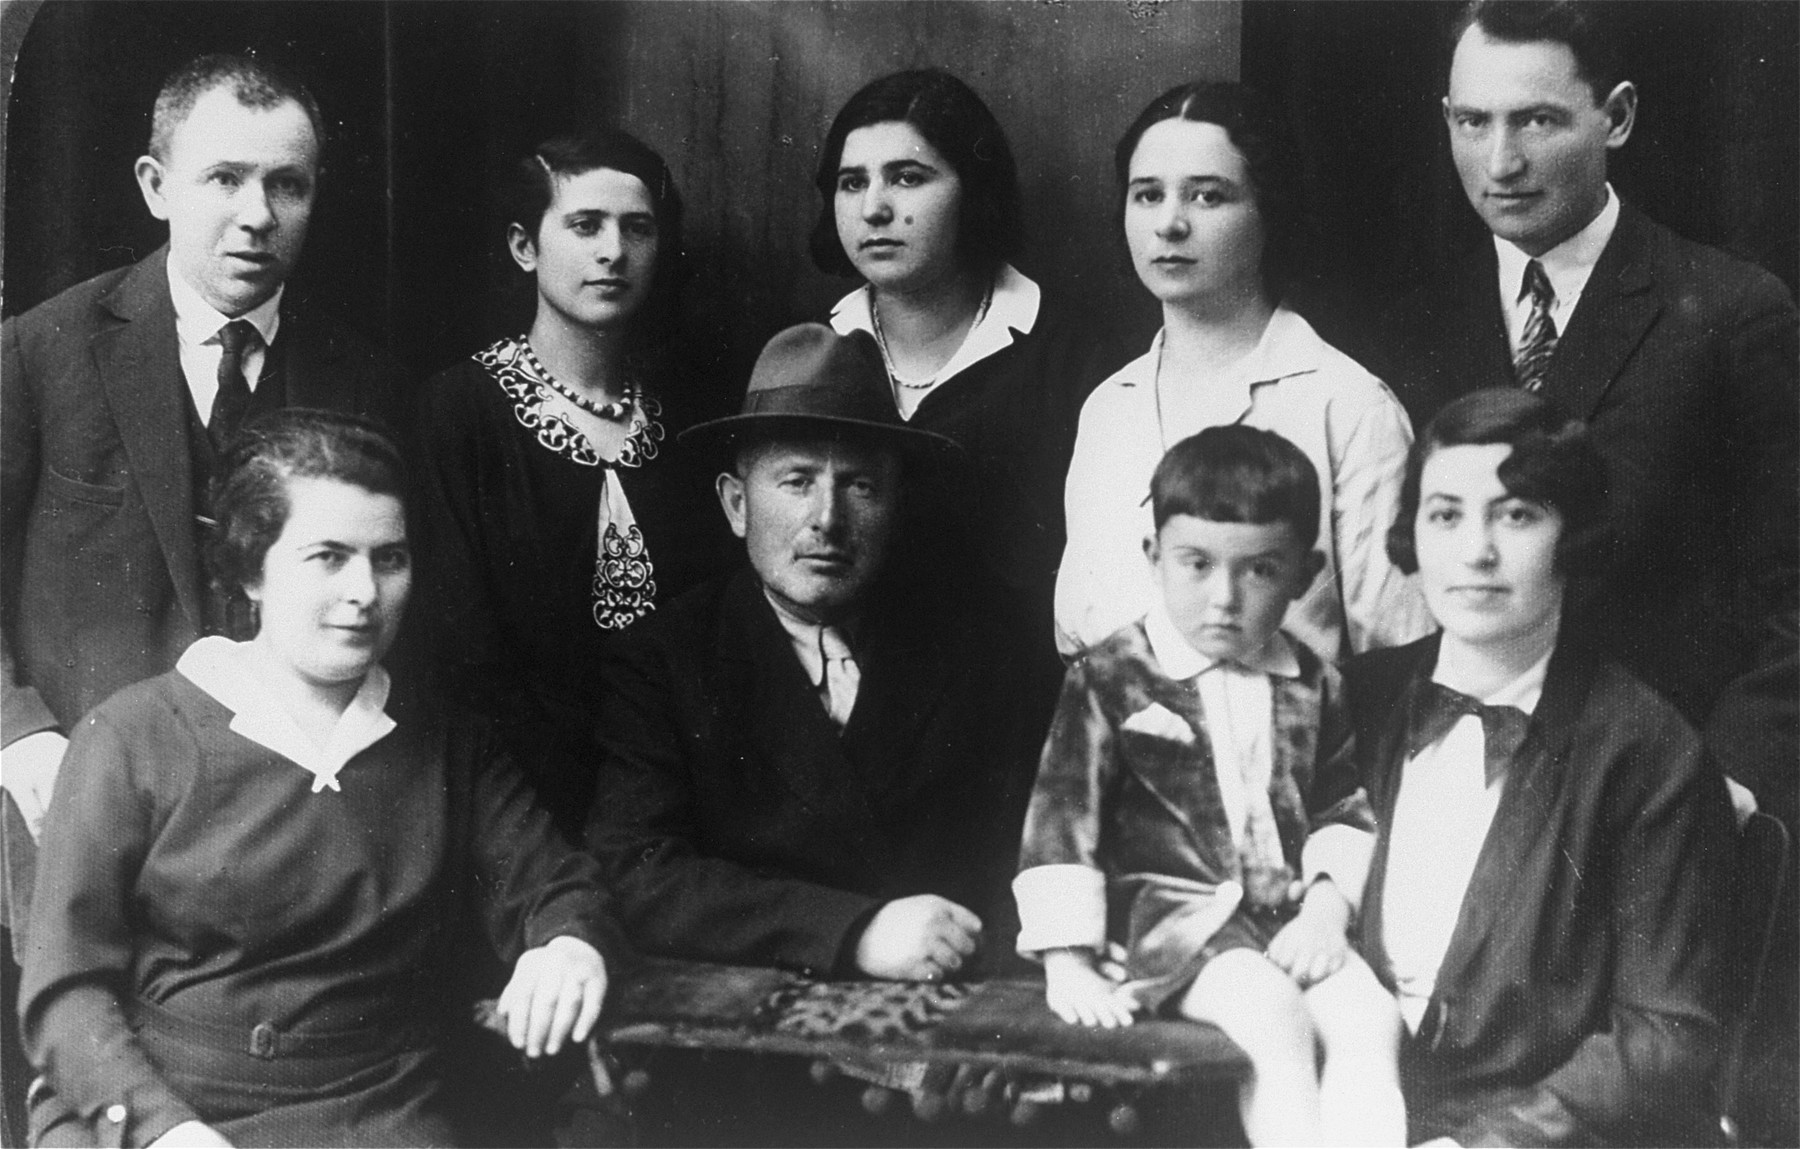 Studio portrait of members of a Jewish family in Vilna.  Pictured are members of the Rudashevsky family.  Among those pictured are: Rosa Rudashevsky (standing second from the left), her father, Zvi Yaacov Rudashevsky (front row center with hat), her sister Yona Rudashevsky (back row, second from the right), Hannah Rudashevsky (back row, center), and Eli Rudashevsky (back row, right), his wife Rosa (a second Rosa, front row, right) and son Yitzhak (front row, second from the right).